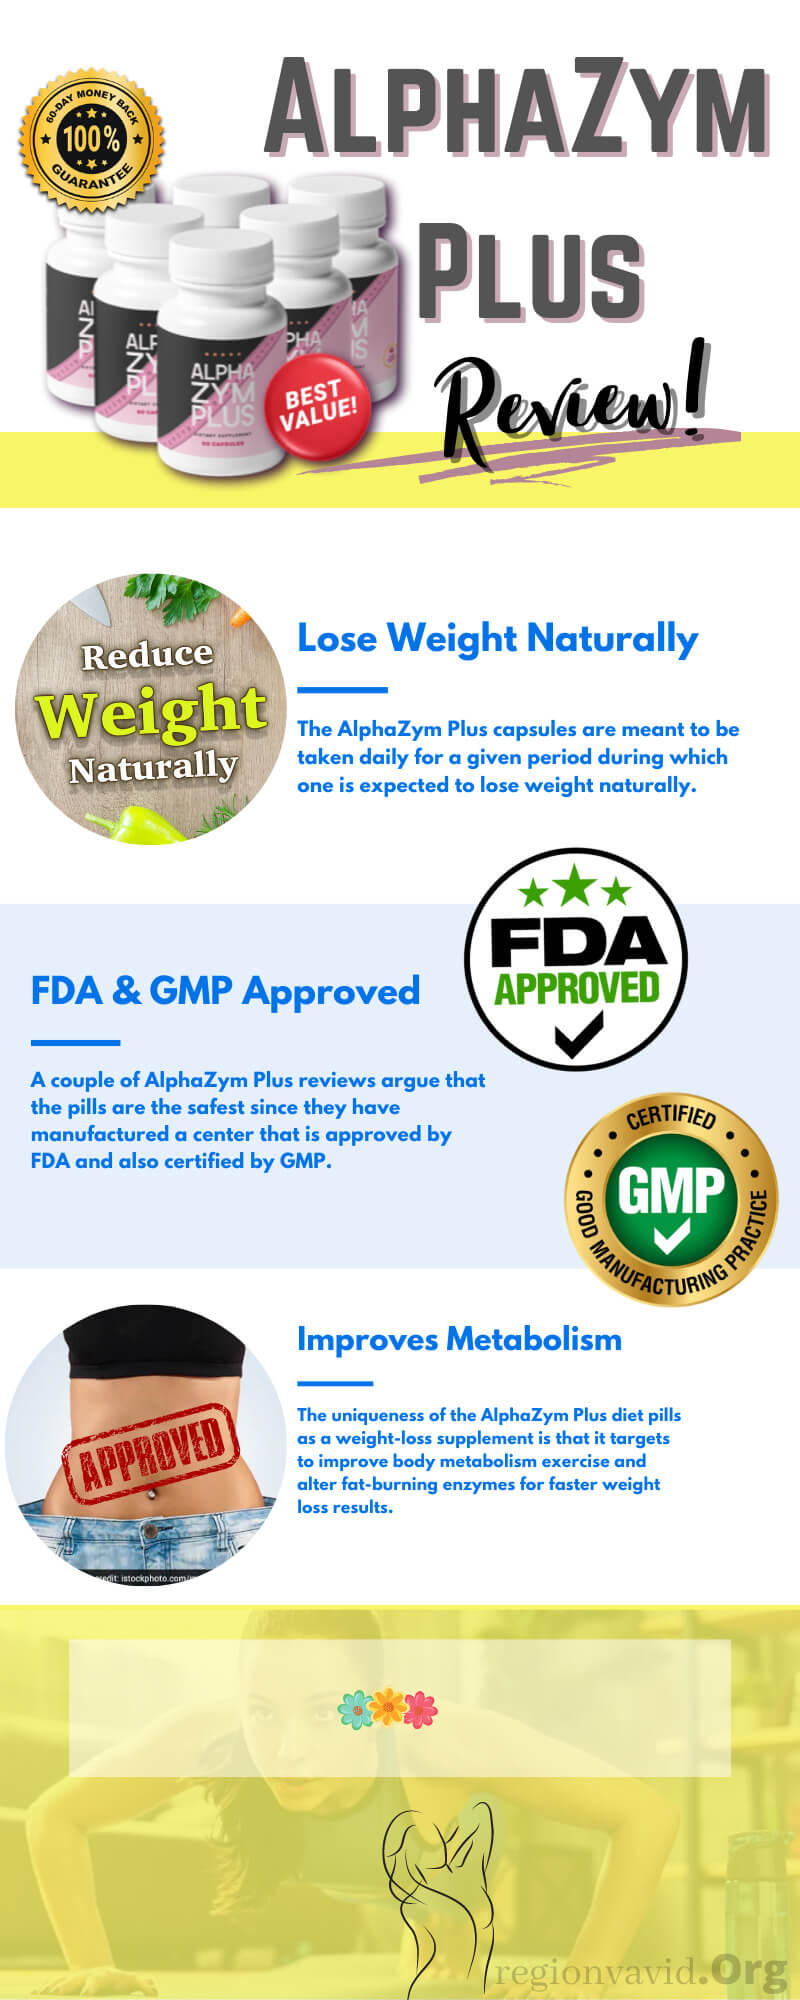 AlphaZym Plus Benefits and approval